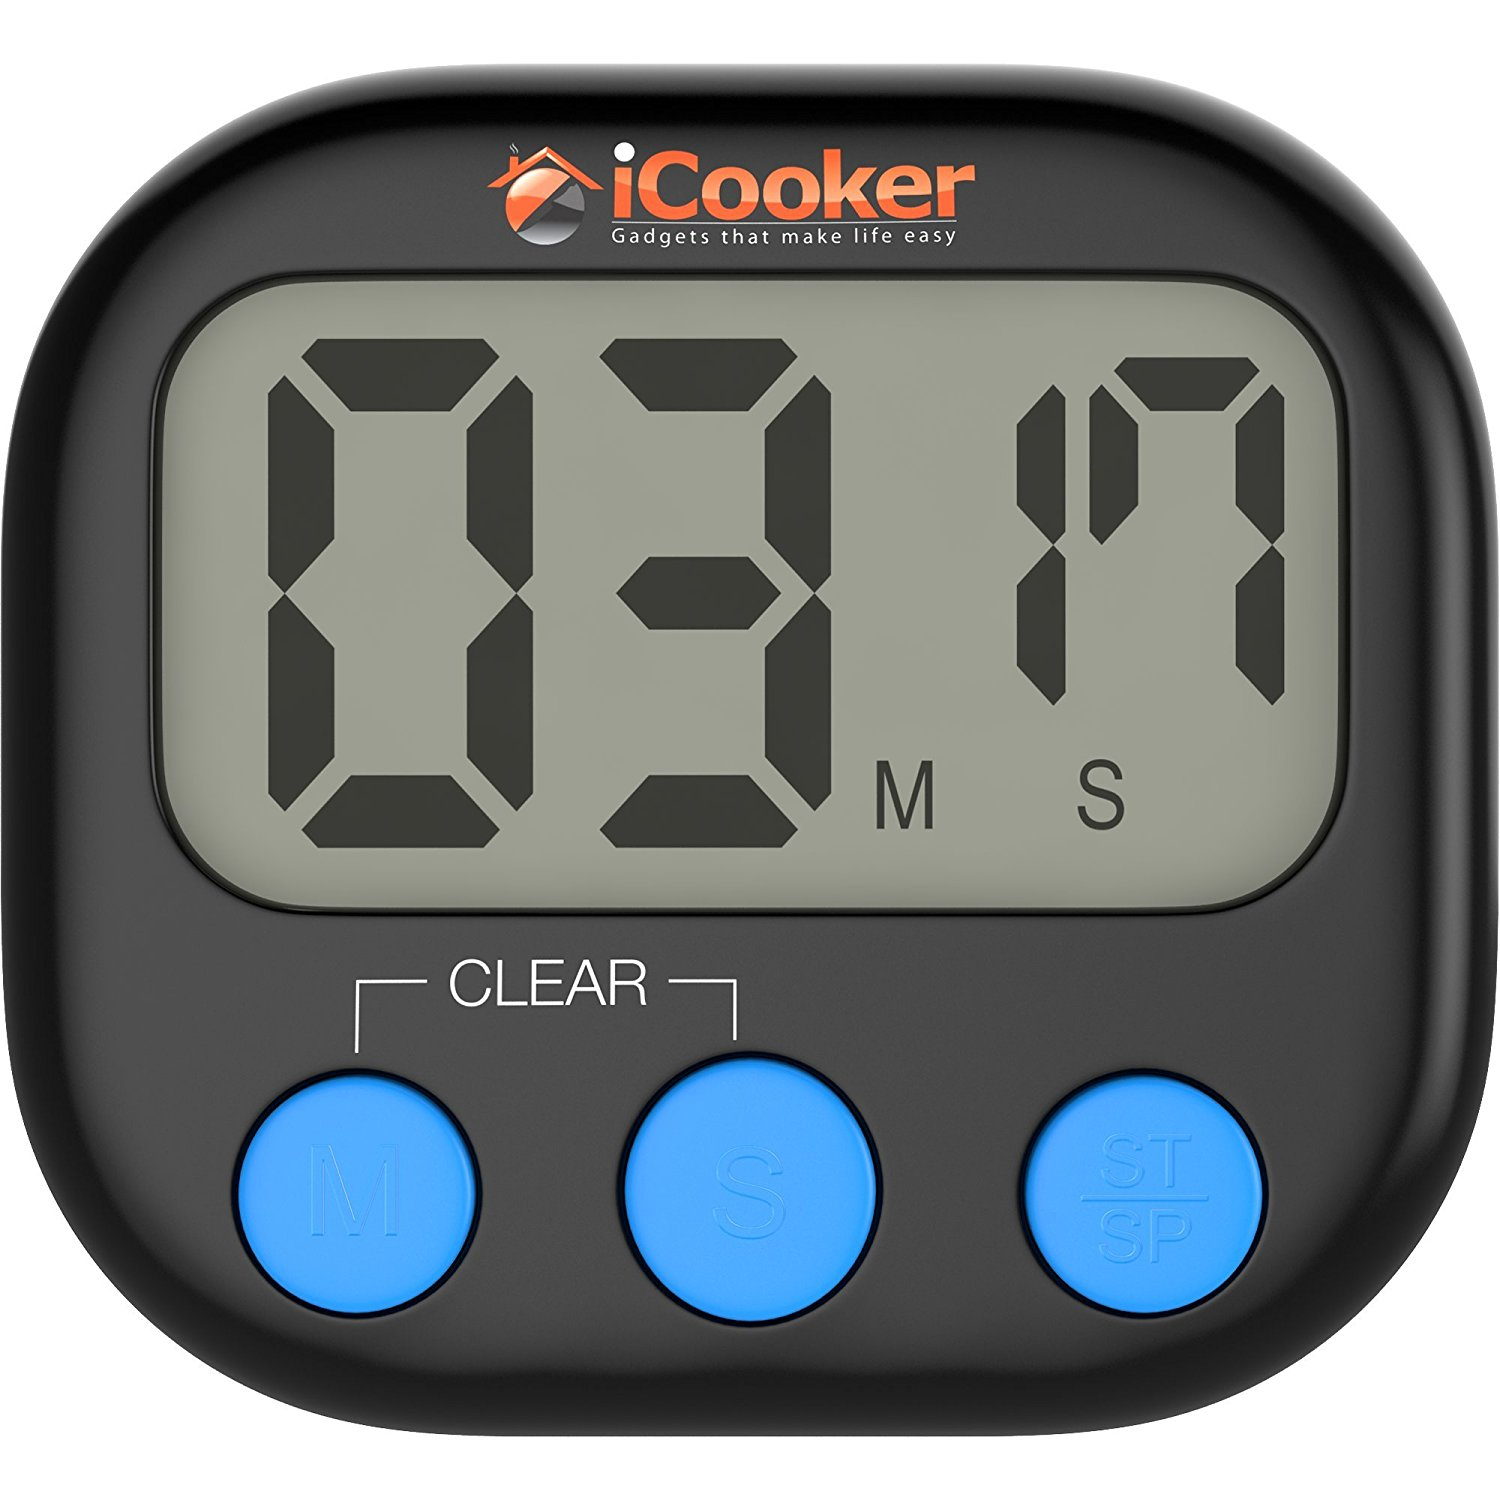 iCooker Digital Kitchen Timer [Magnetic Back] Premium Quality Large LCD Digital Cooking and Baking Count-Down Up For Kitchen Classroom Sports Activities Best Counter Loud Alarm